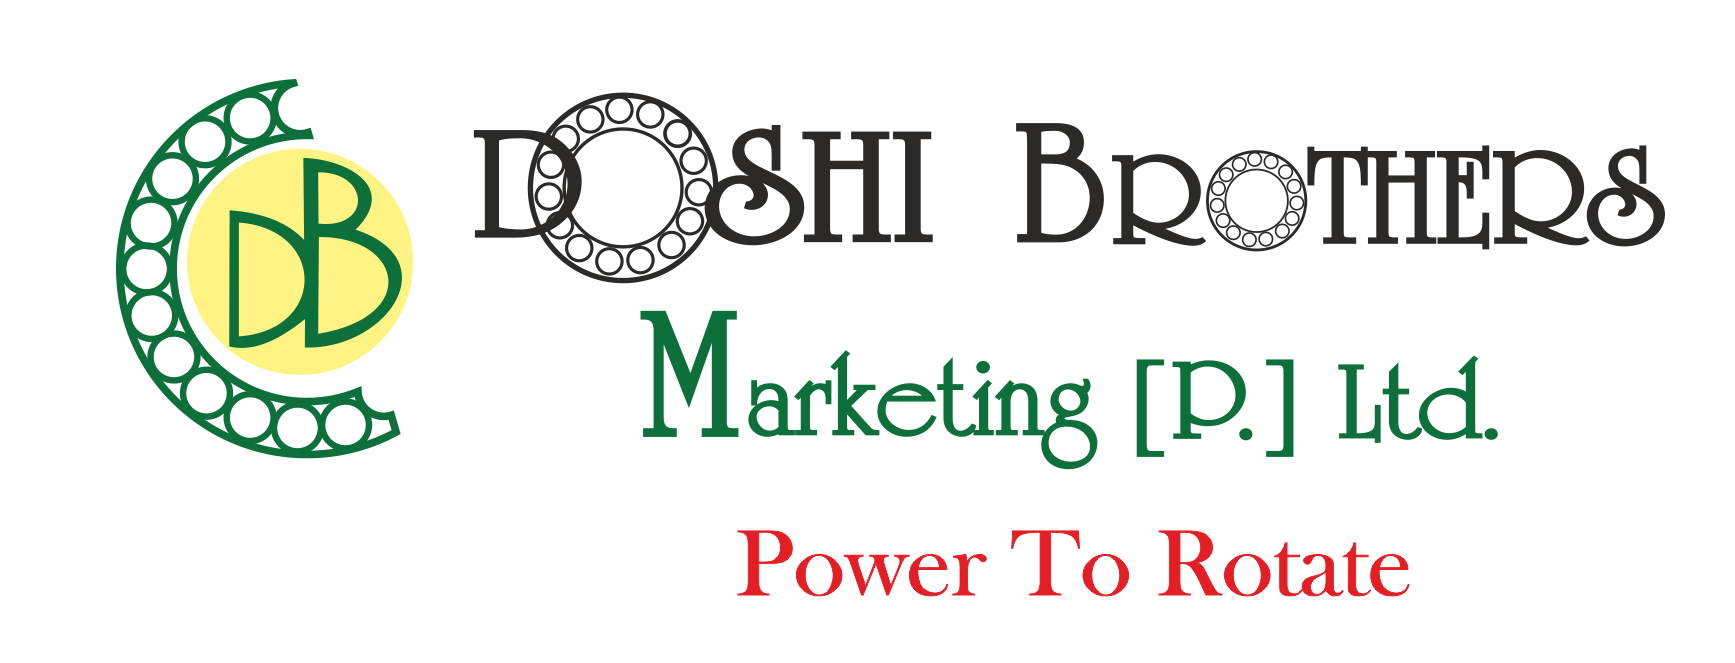 Doshi Marketing